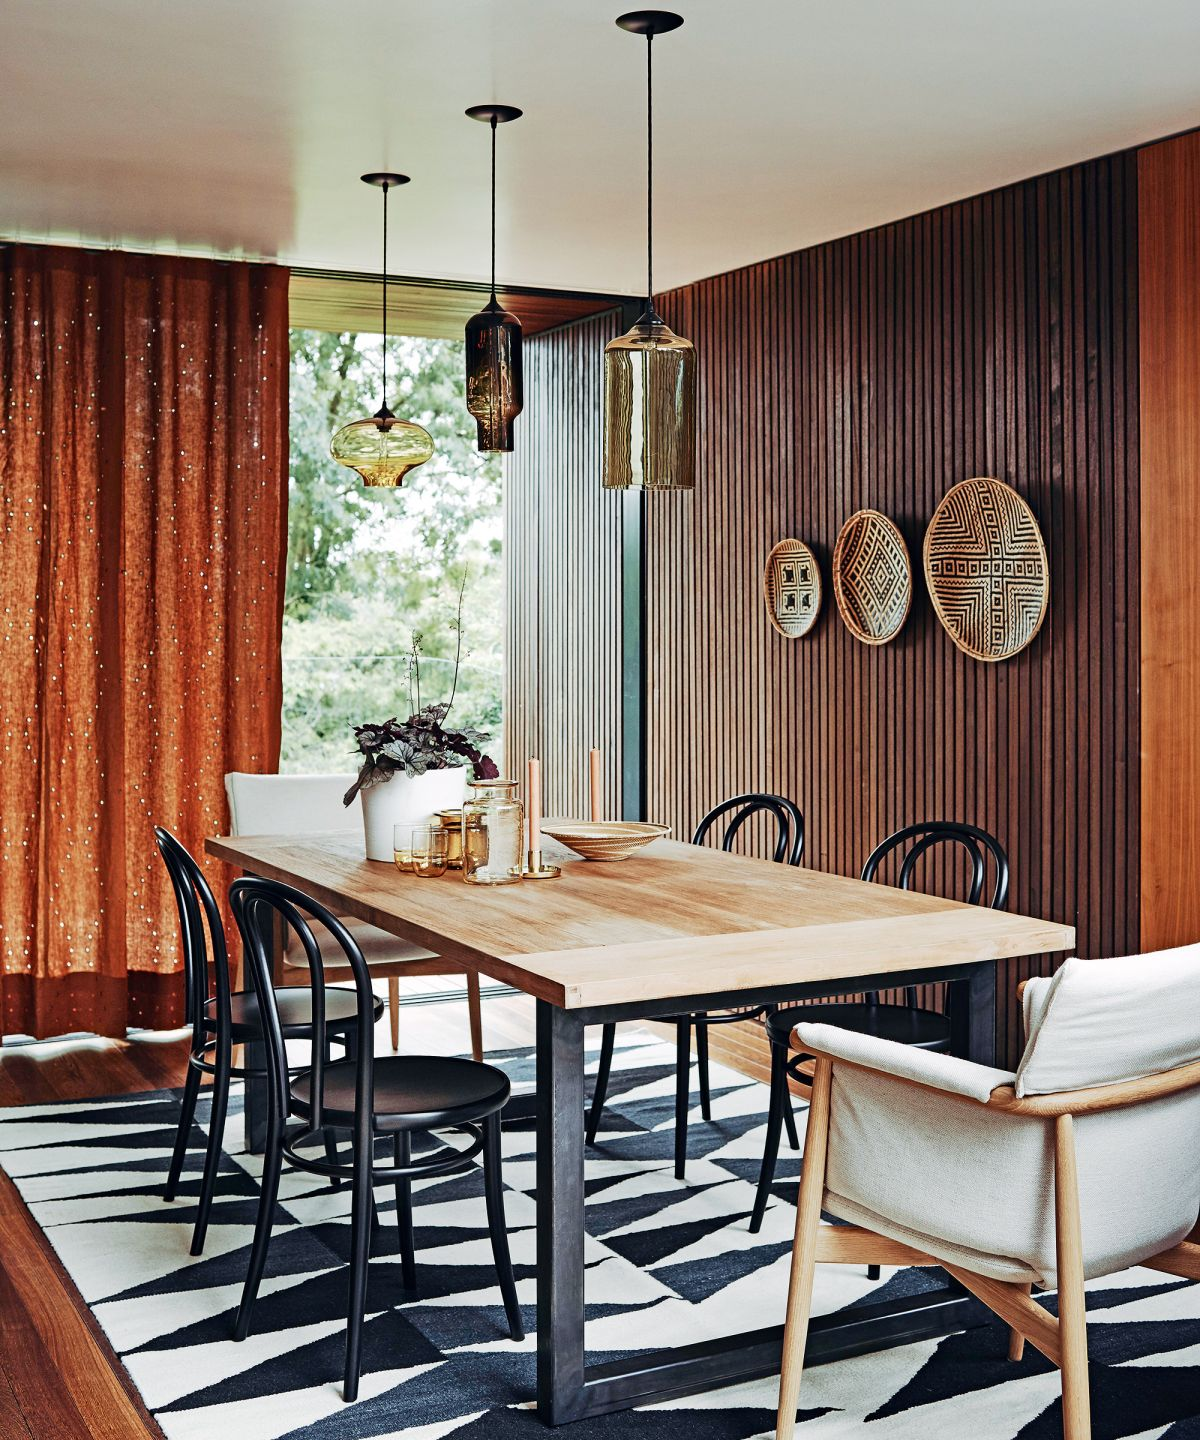 12 contemporary ways to decorate your dining space